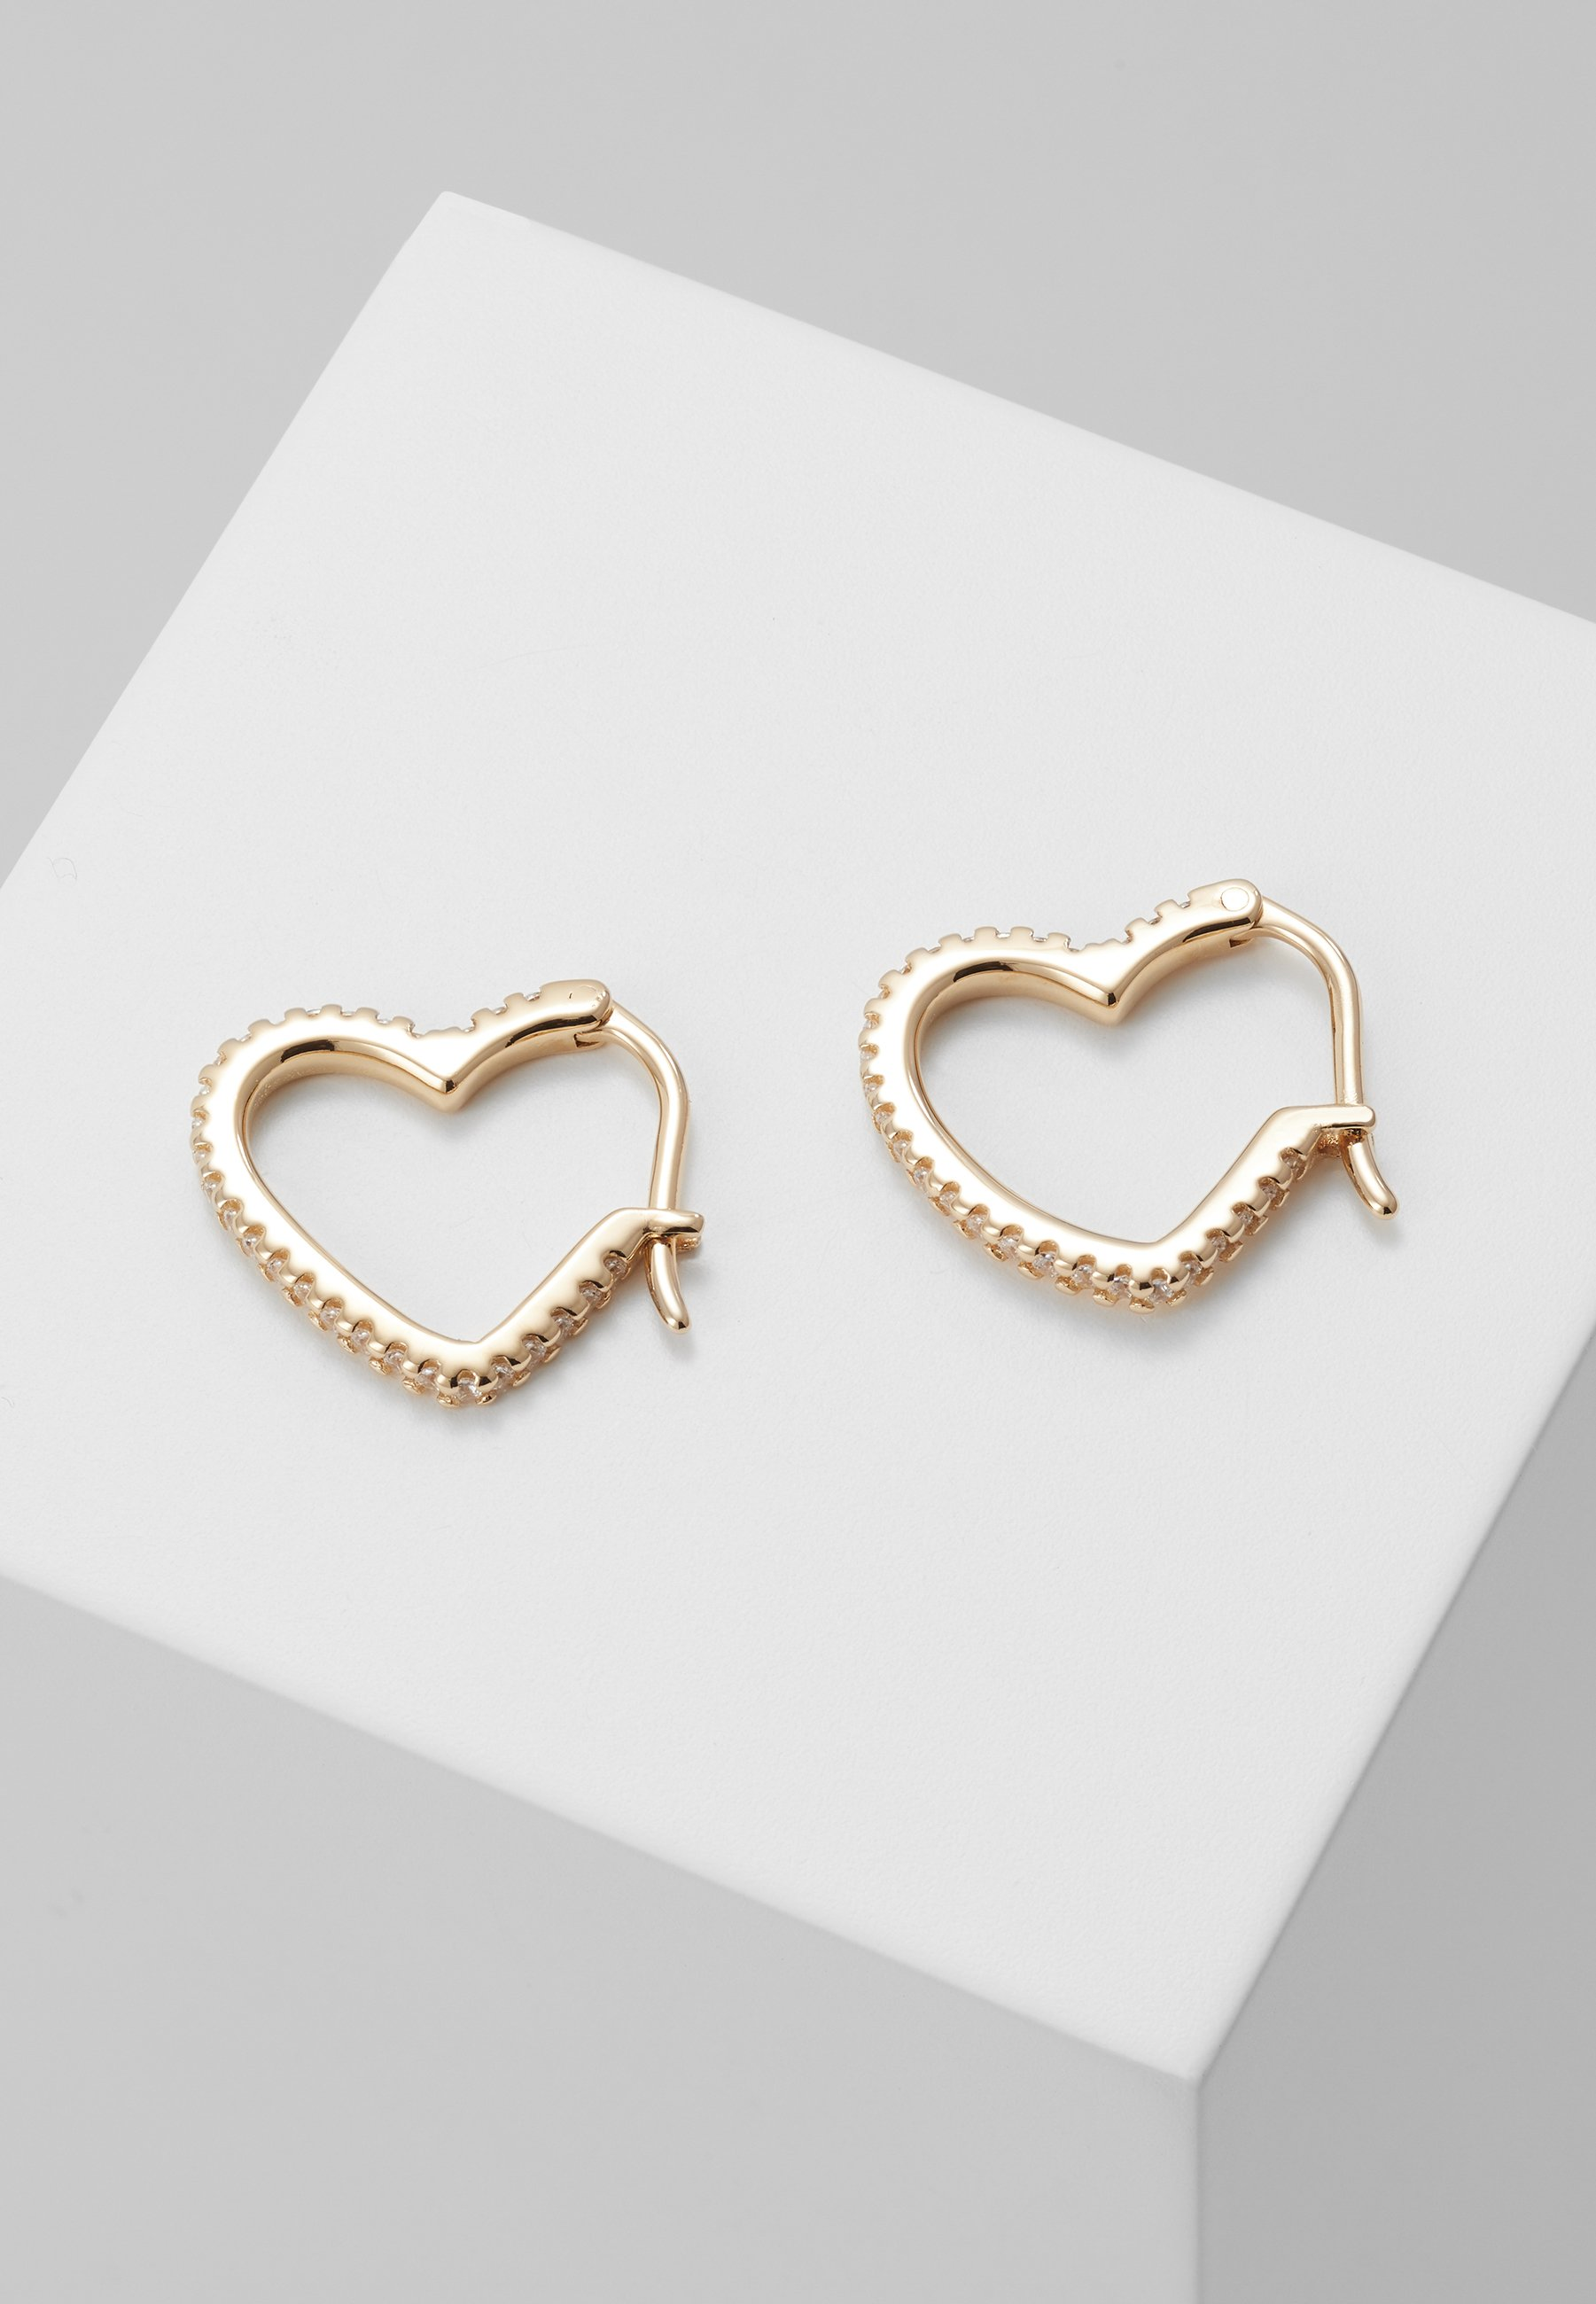 Recommend Discount Outlet Michael Kors PREMIUM - Earrings - rosegold-coloured | women's accessories 2020 9mtGN